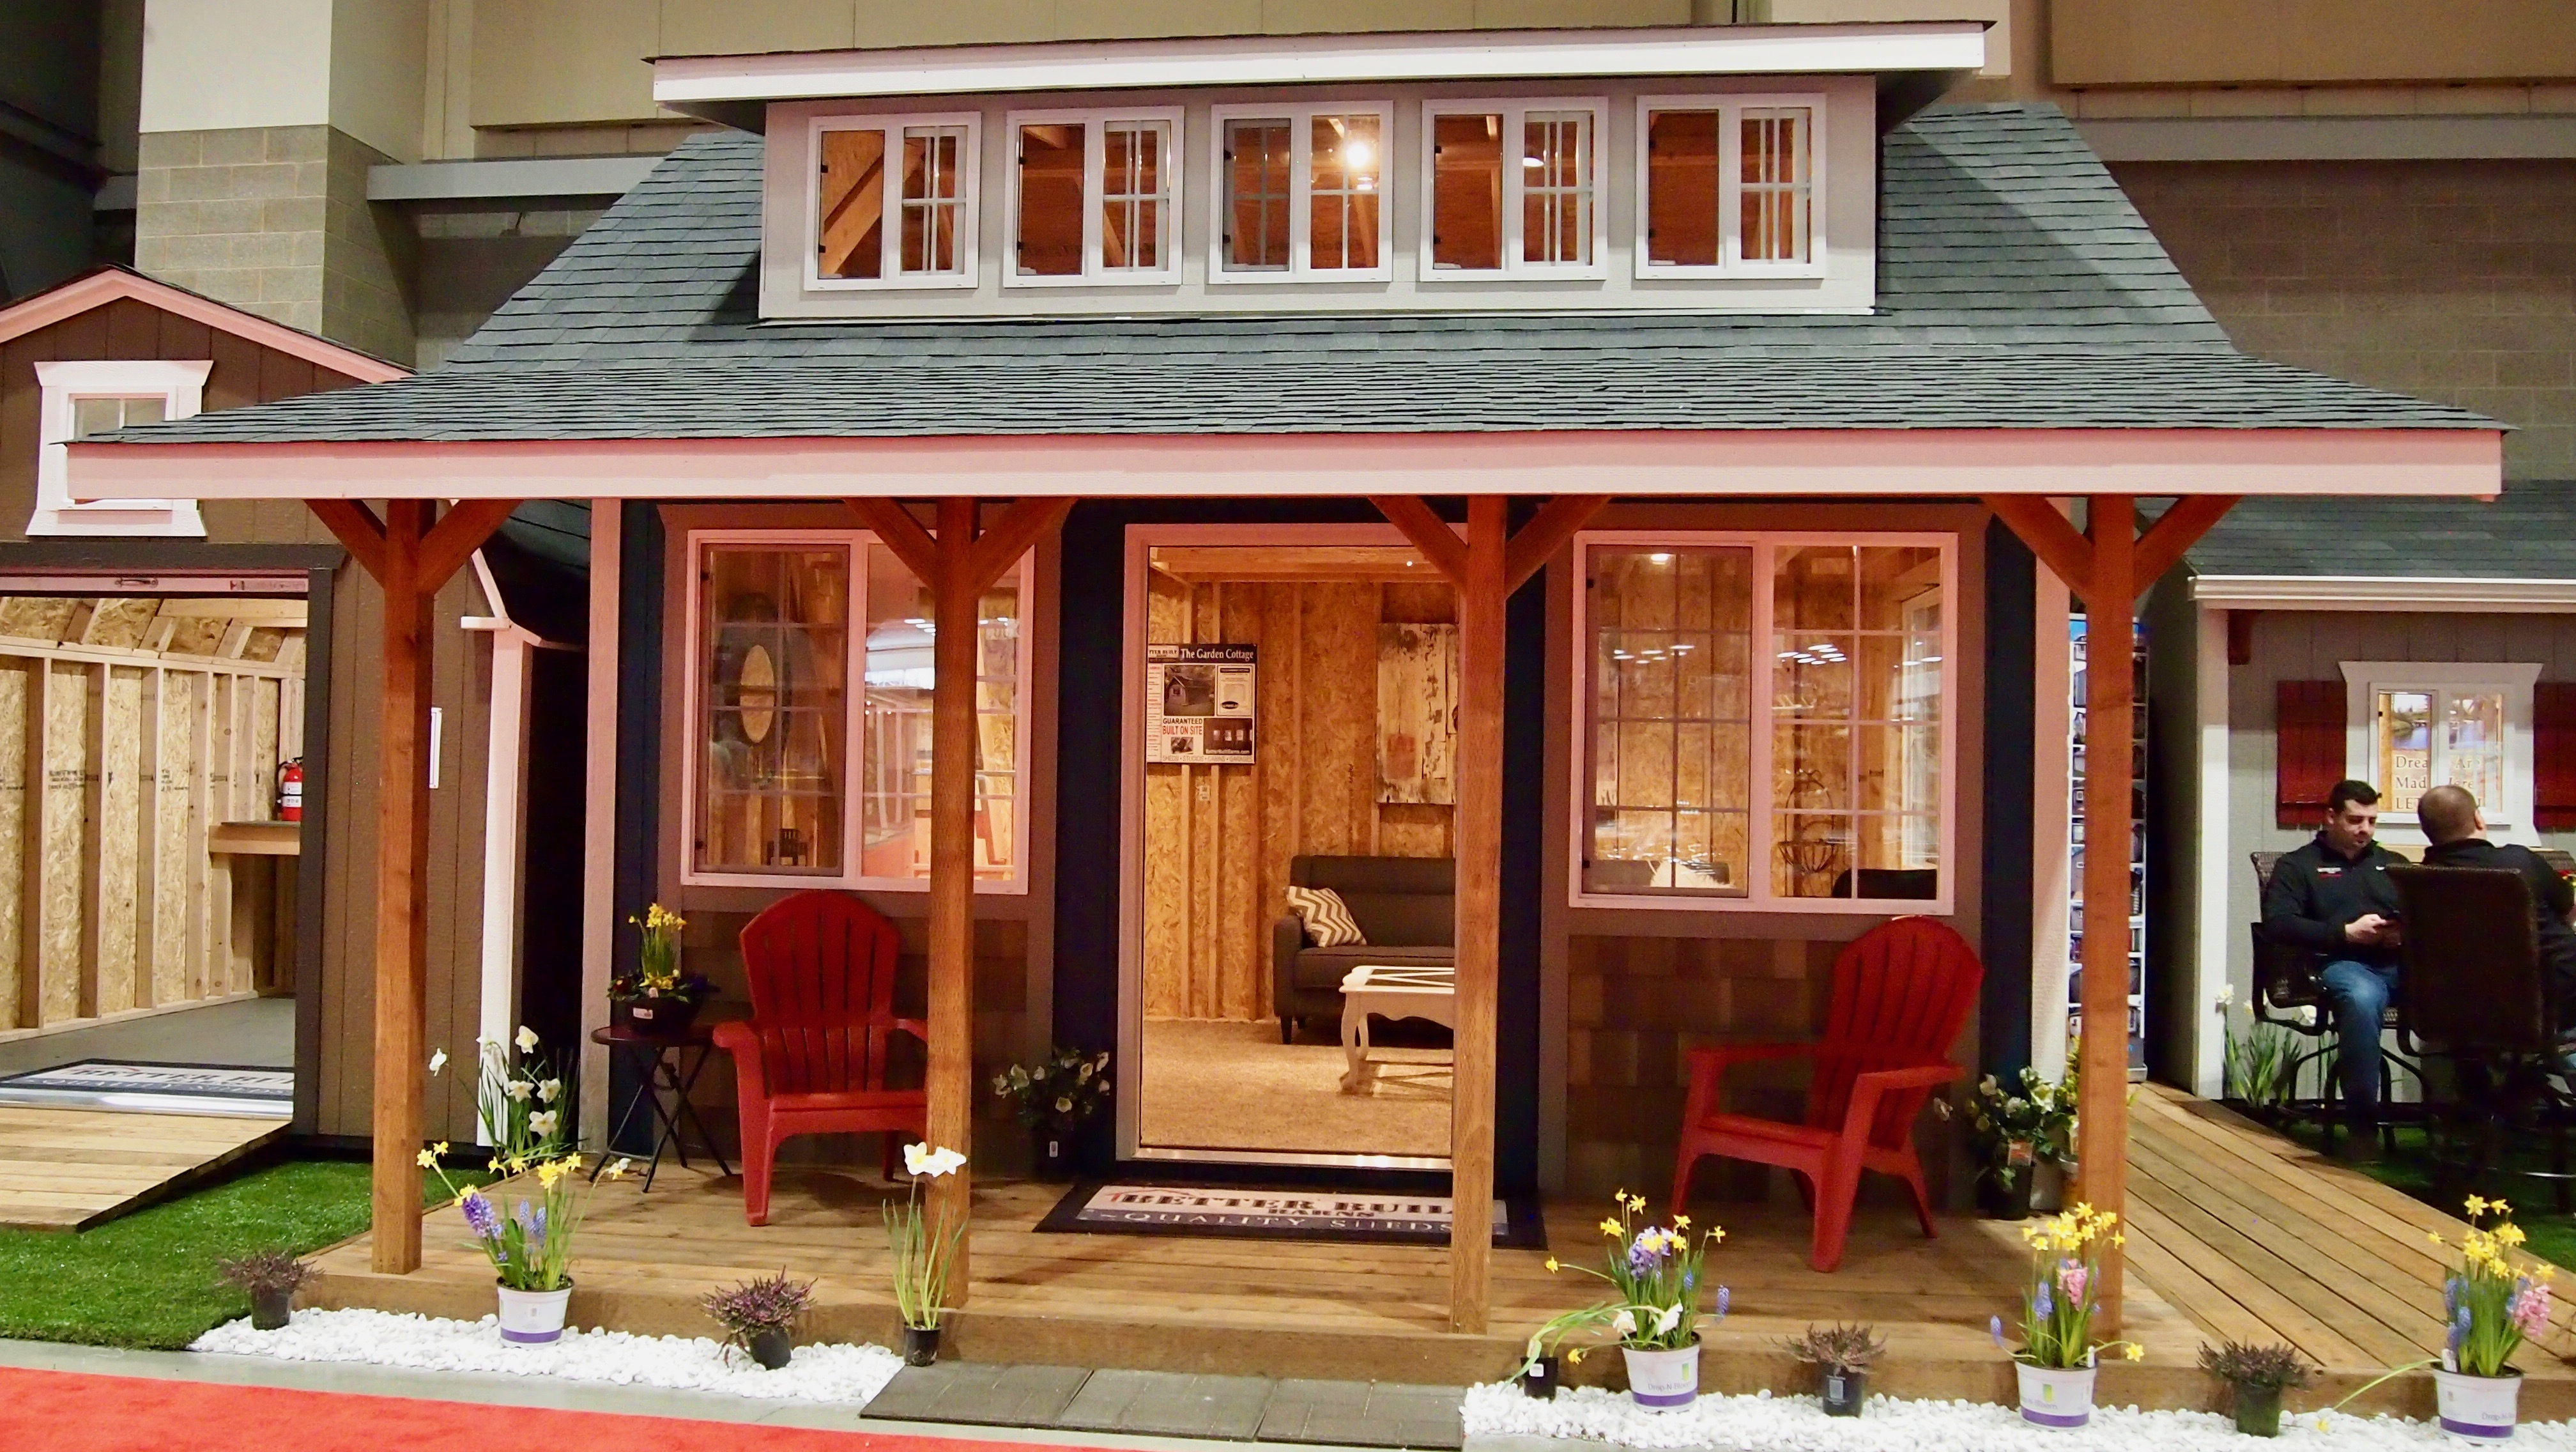 Tiny Home Designs: 10 Tiny Homes, Cabins, And Sheds At The Seattle Home Show